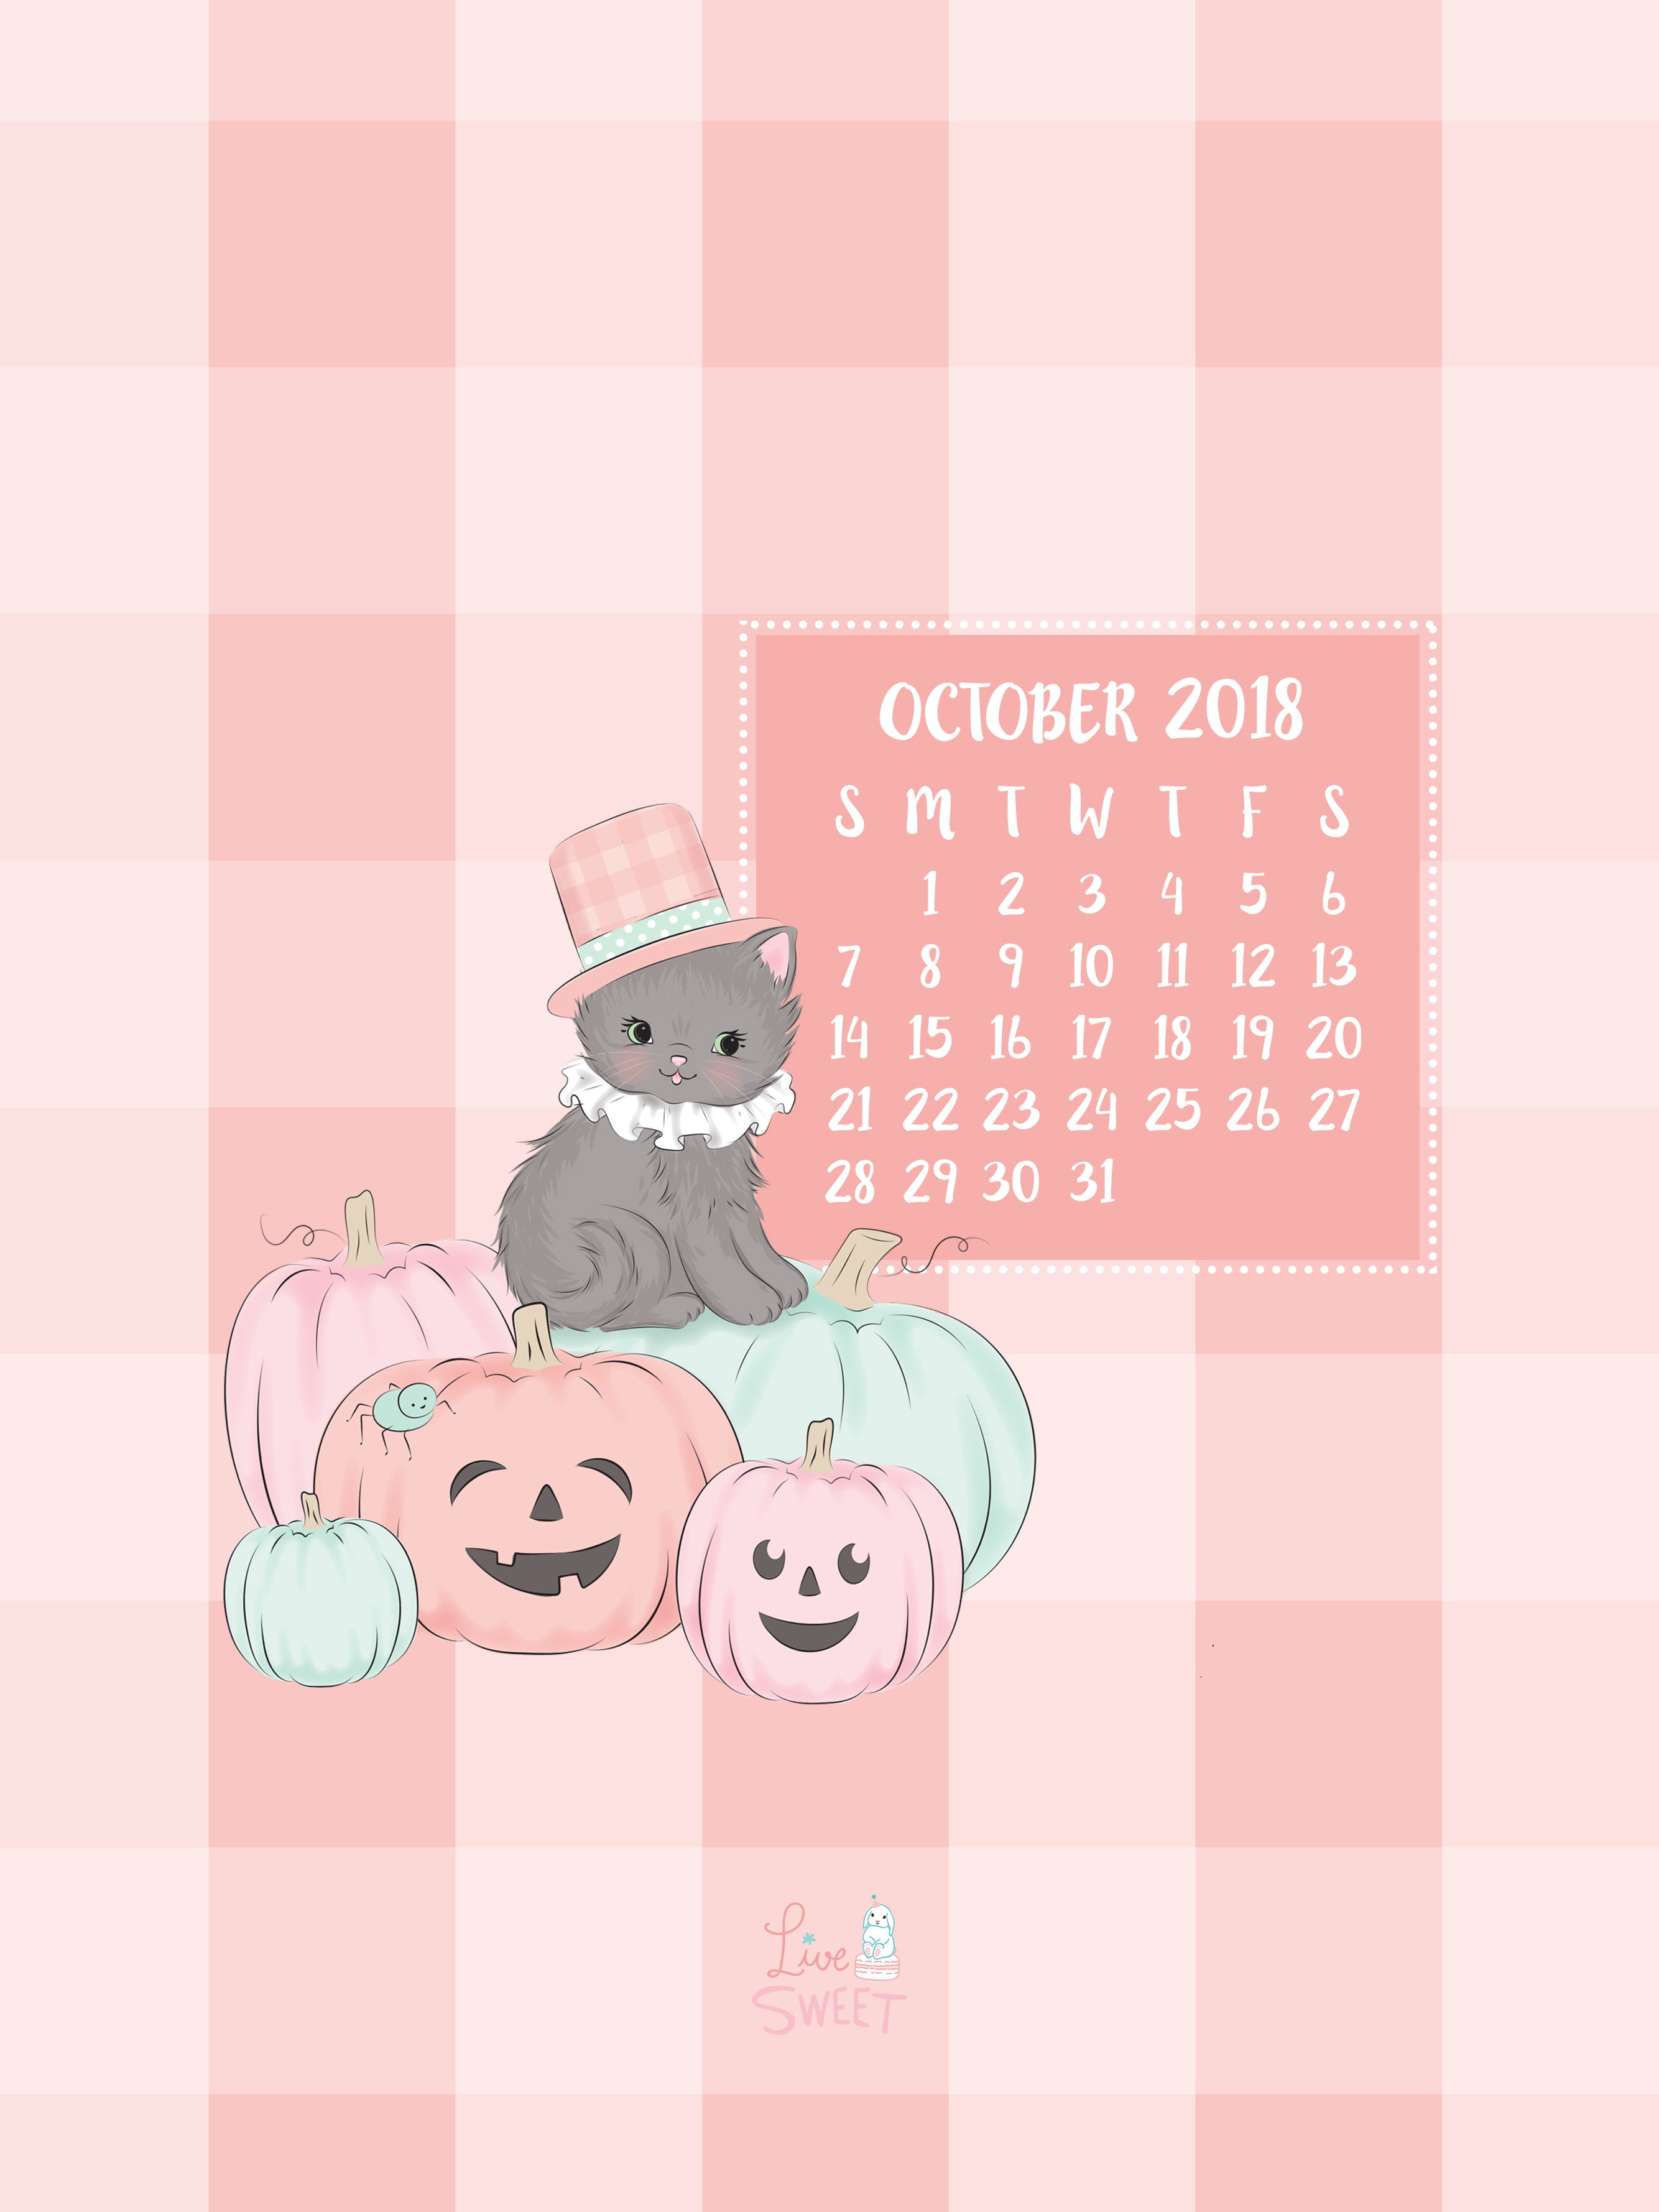 October 2018 Free Wallpapers! - Live Sweet